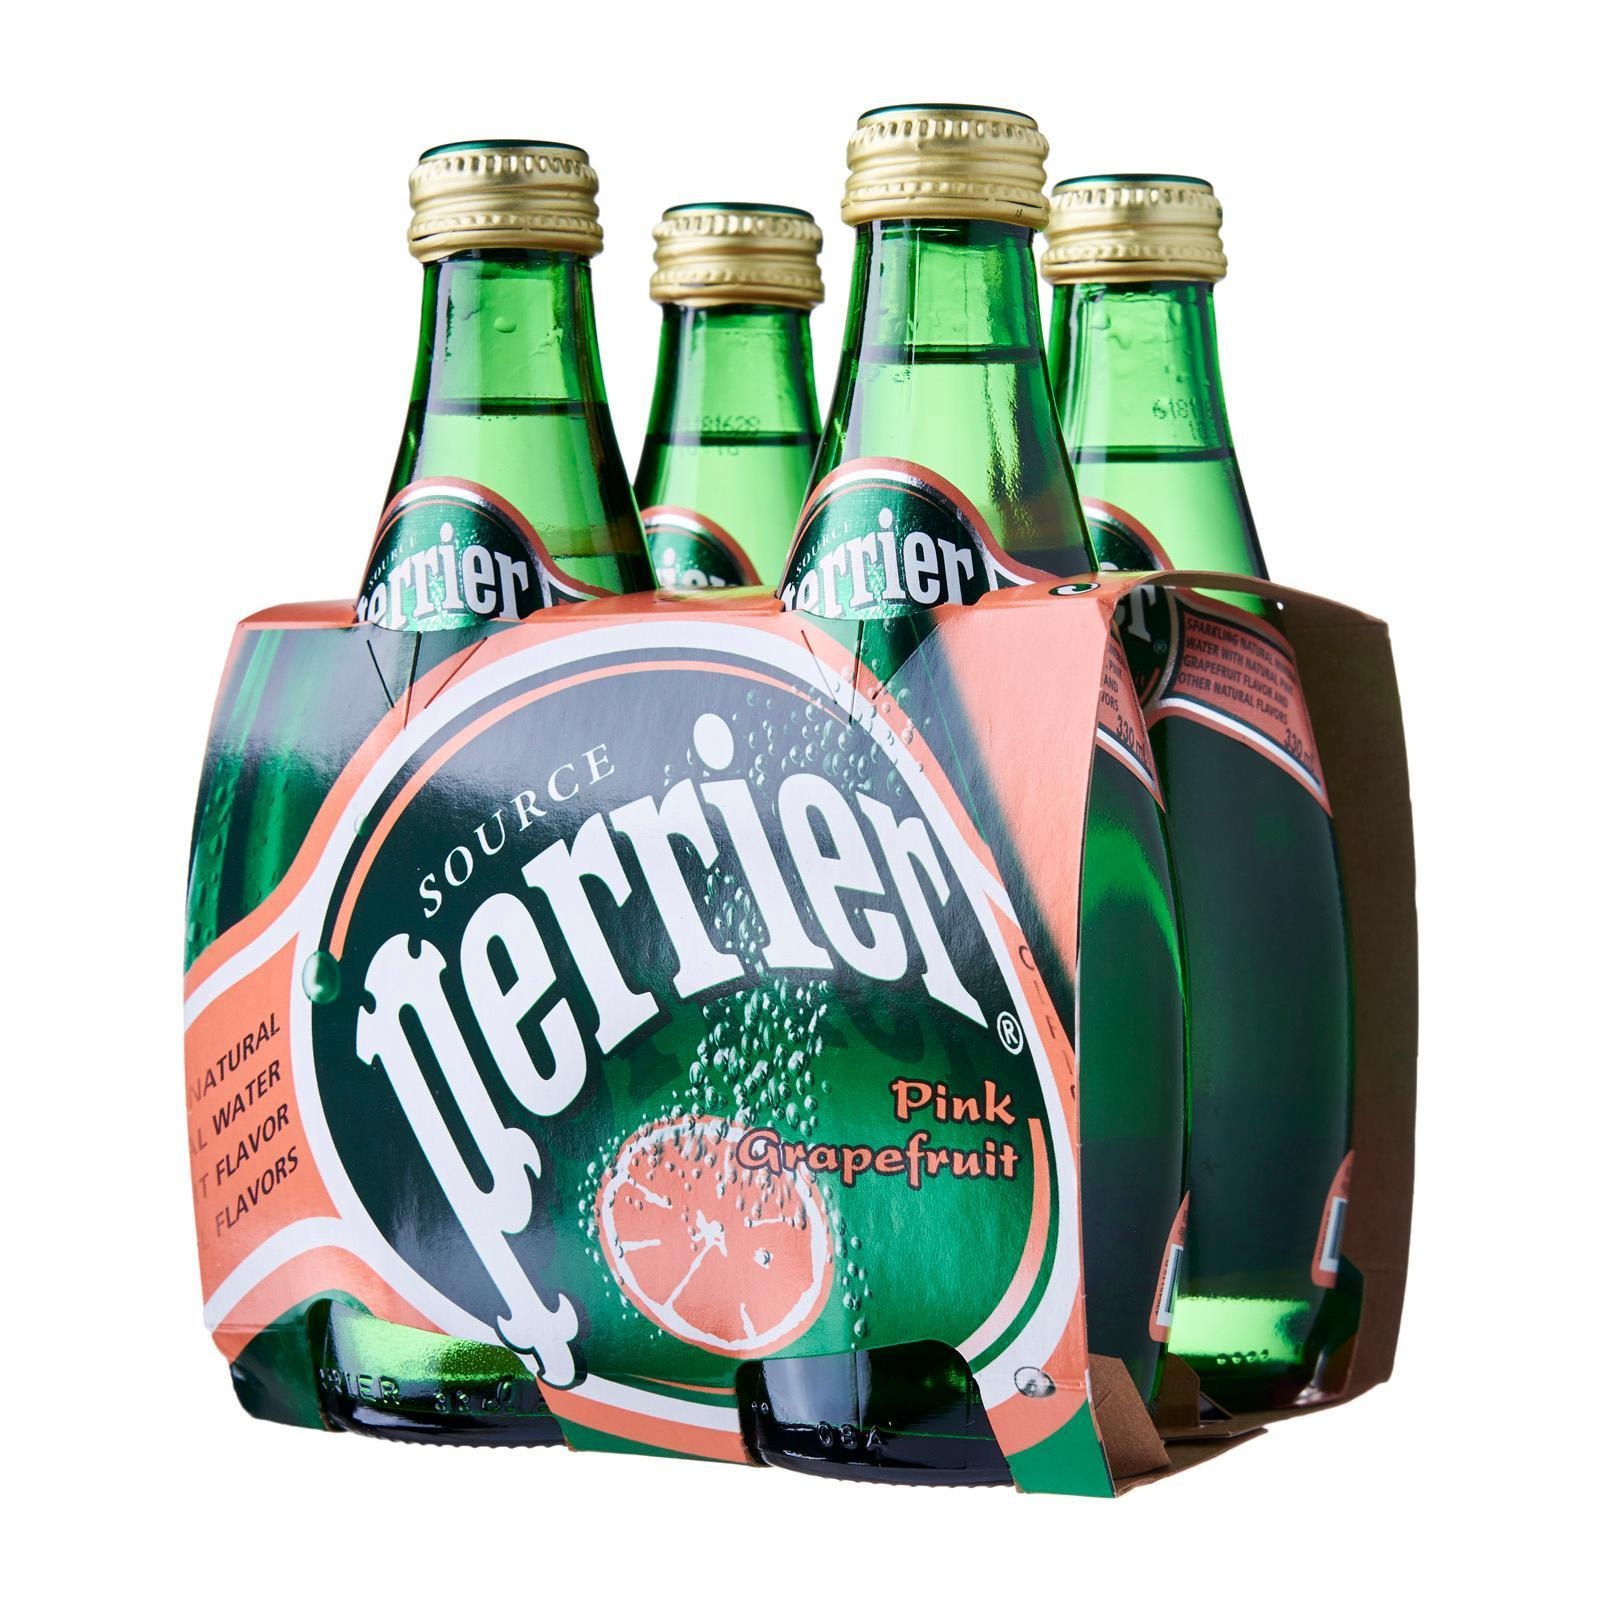 Perrier Pink Grapefruit Sparkling Natural Mineral Water